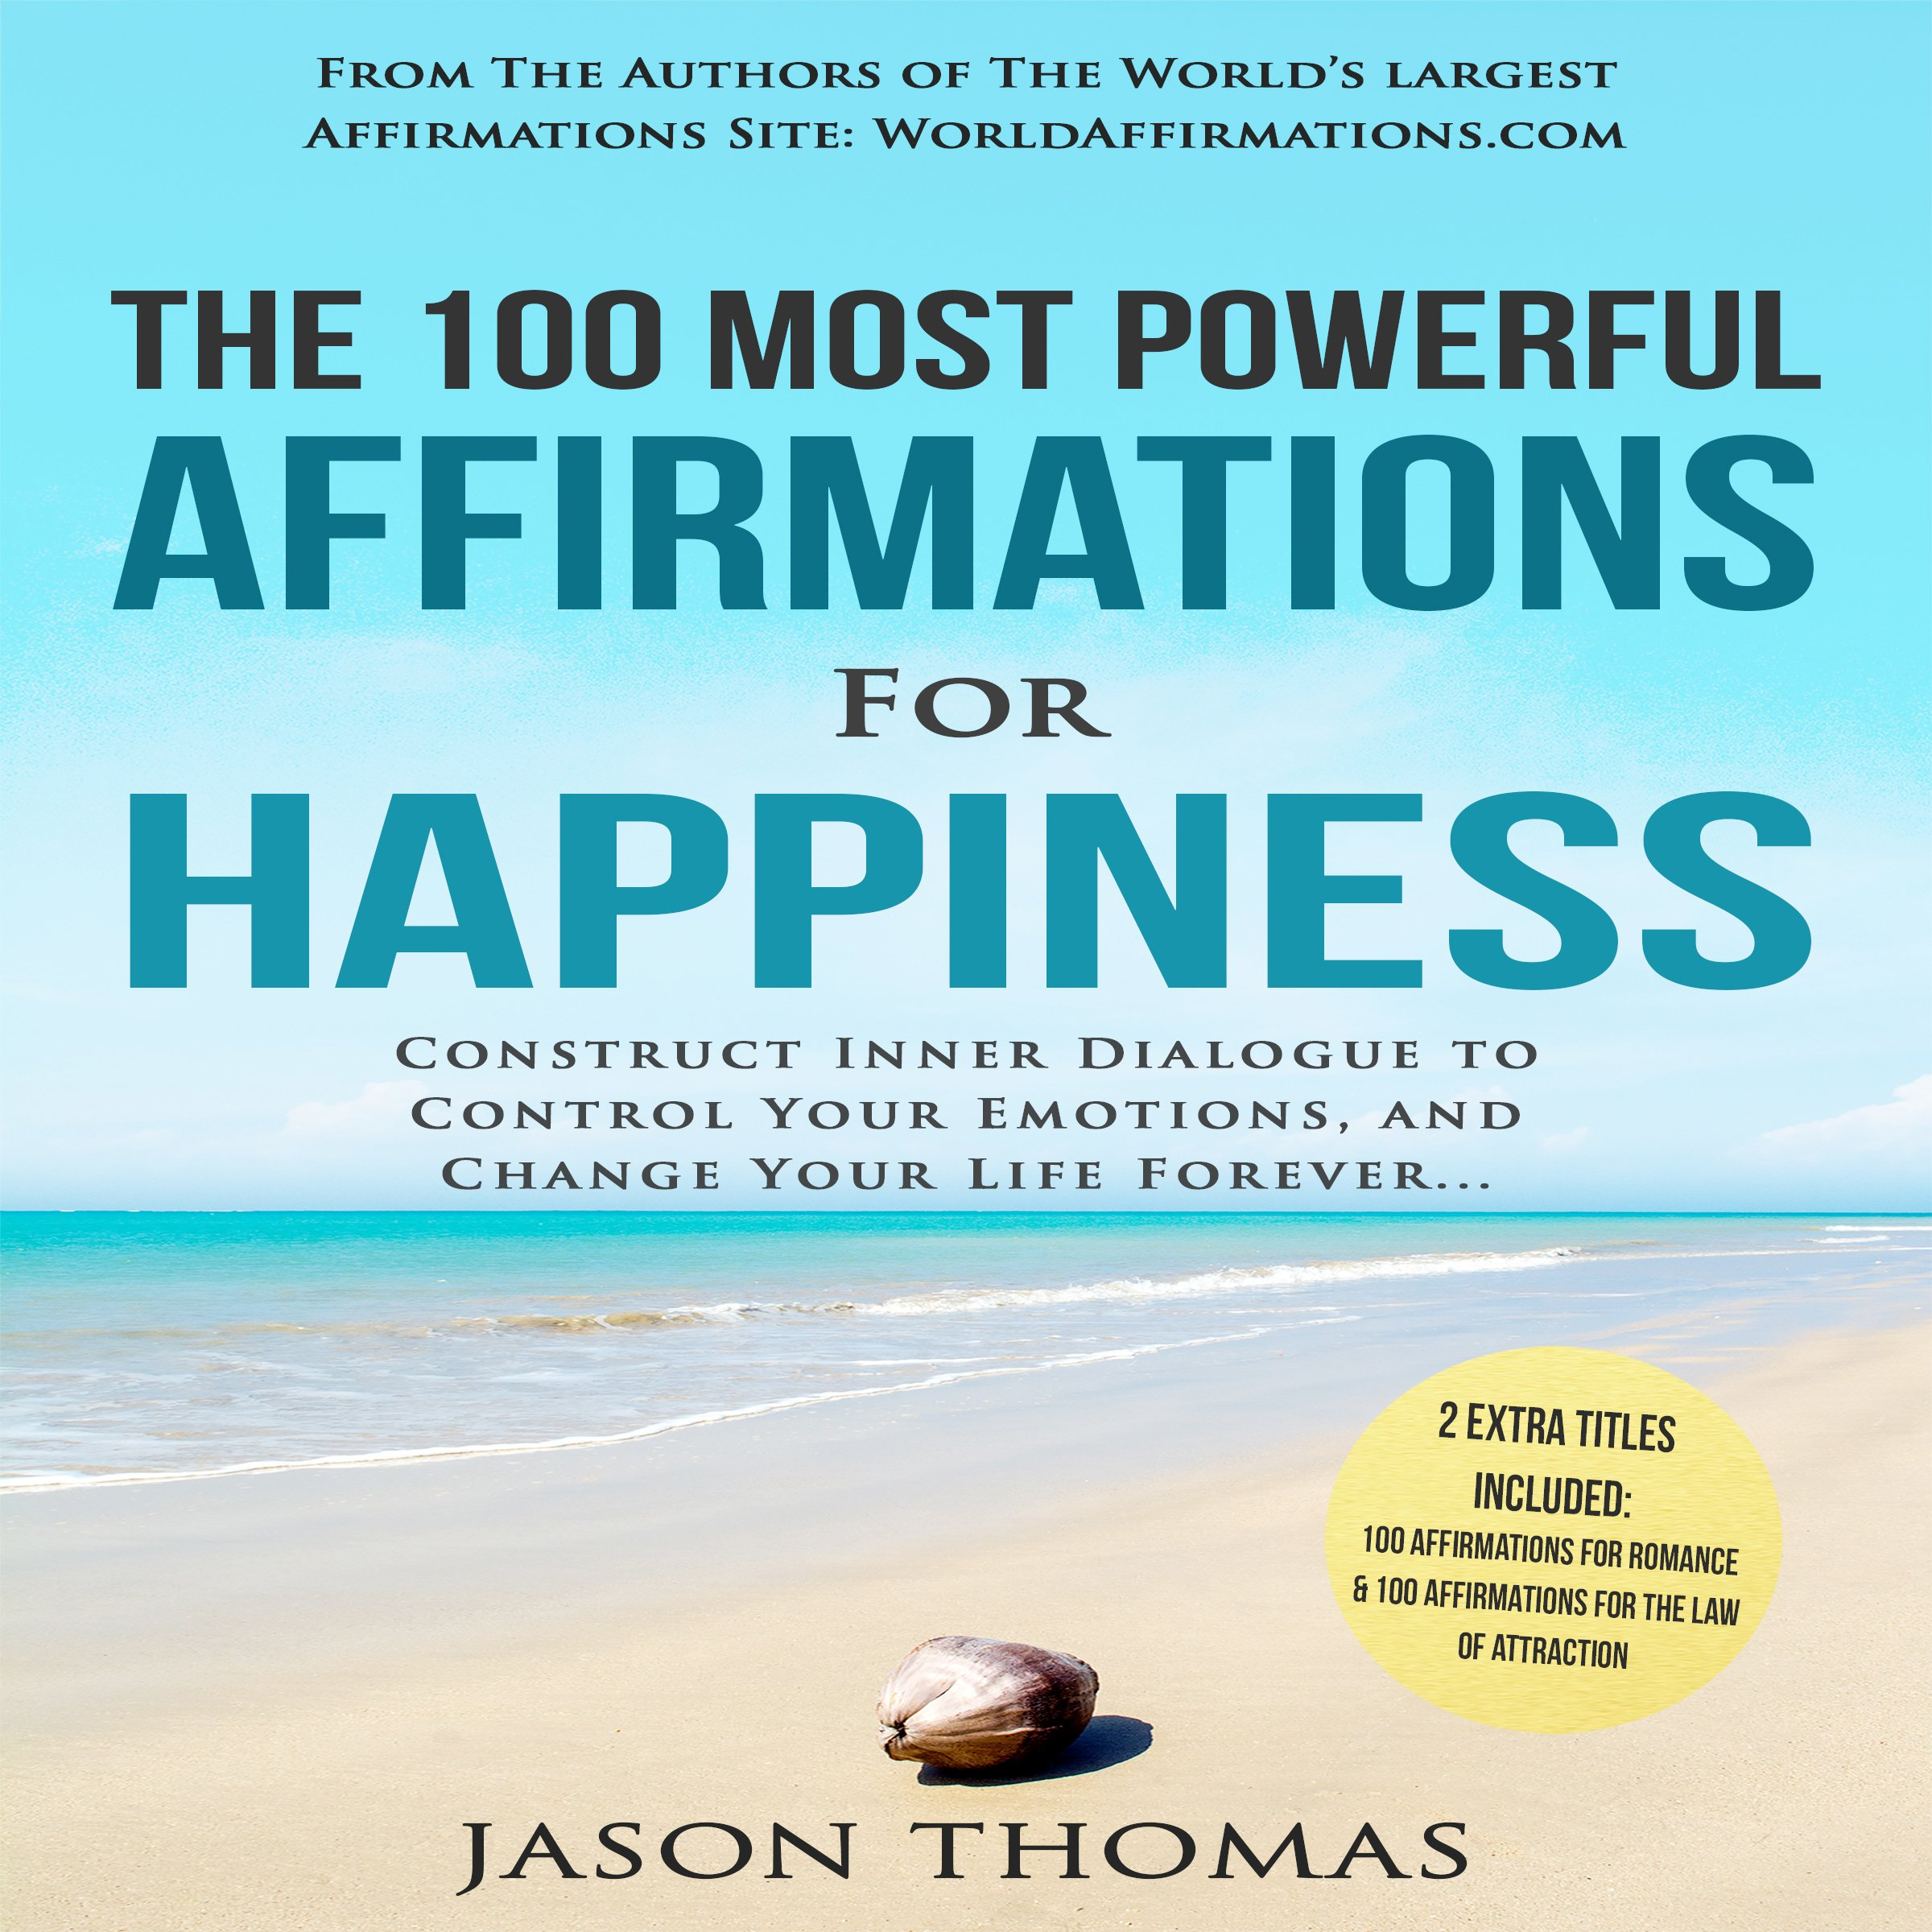 The 100 Most Powerful Affirmations for